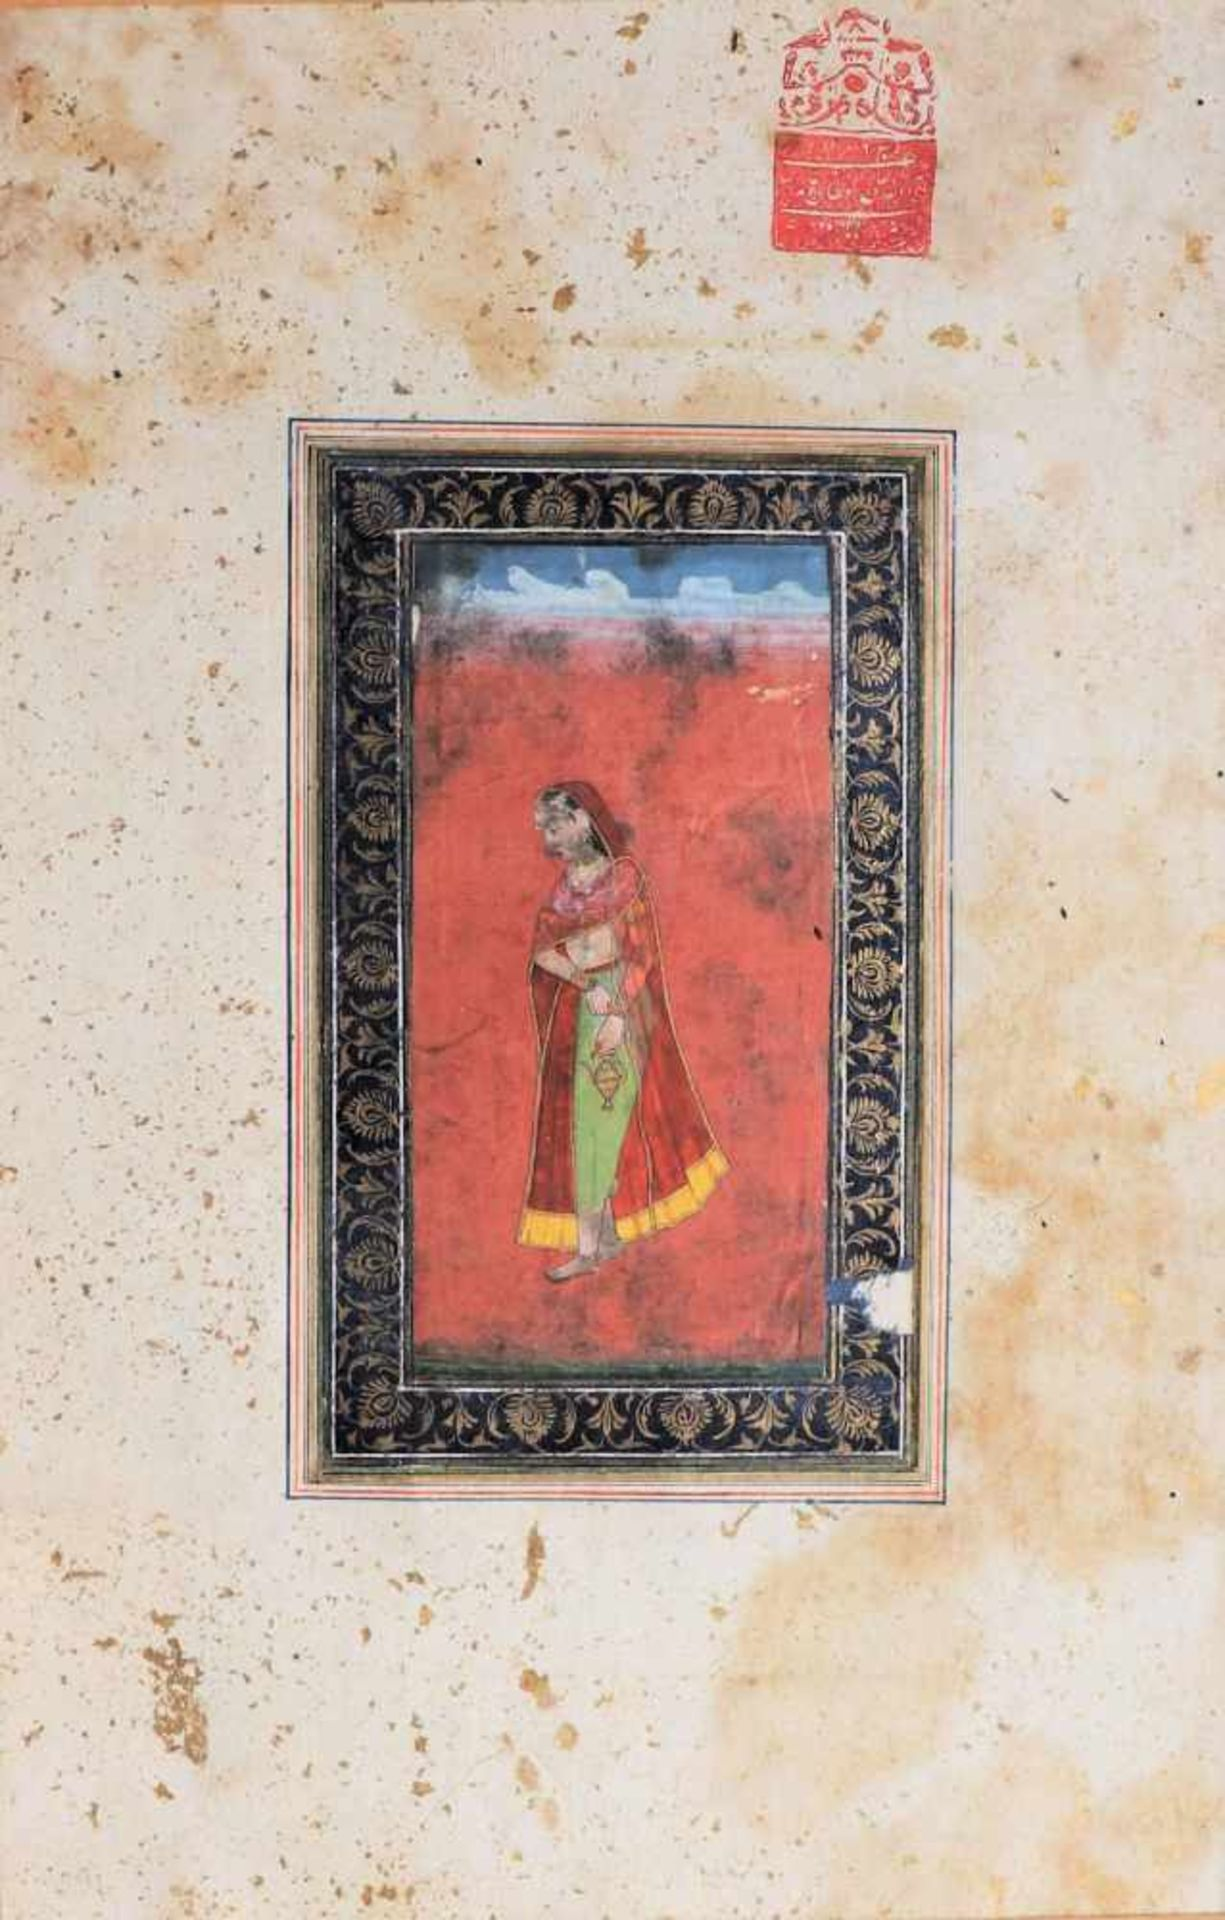 AN INDIAN MINIATURE PAINTING OF A LADY WITH LITTLE A WATER POTPainting with watercolors and gold